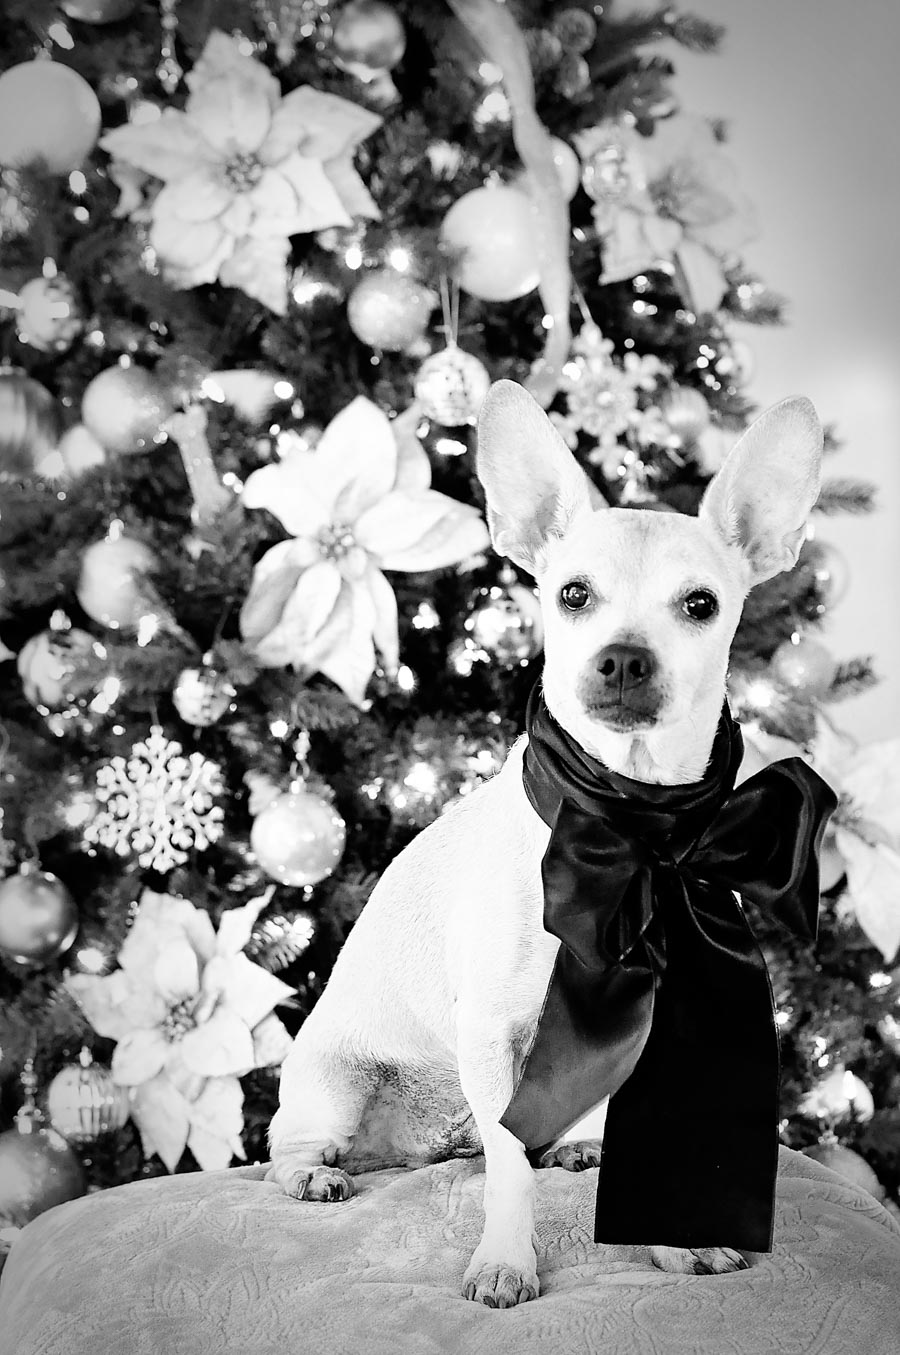 Pee Wee's holiday pet portrait 2017